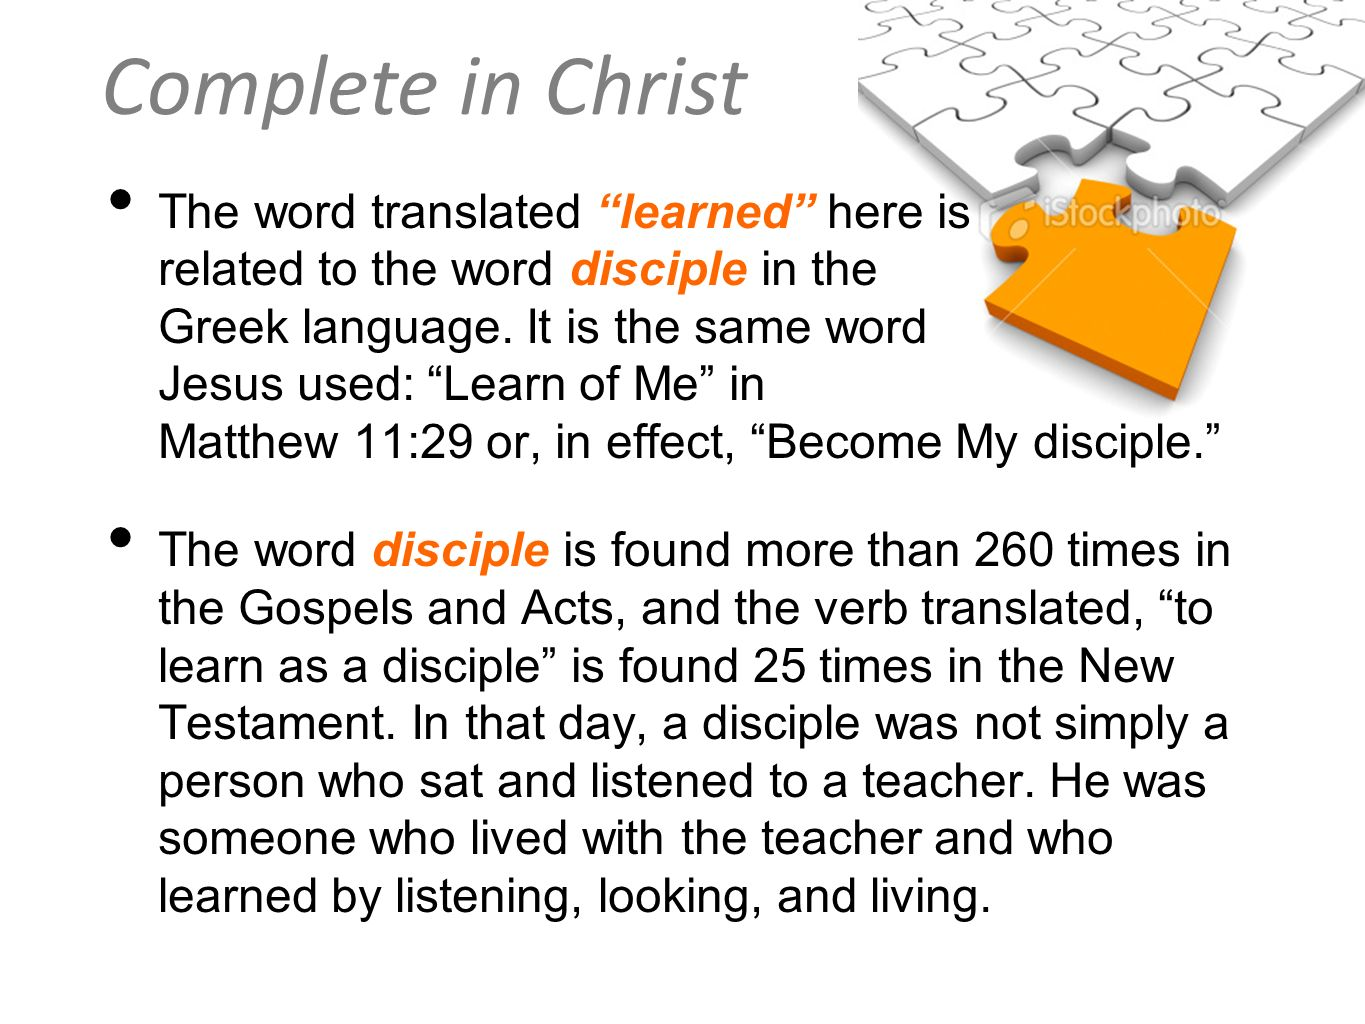 Complete in Christ The word translated learned here is related to the word disciple in the Greek language. It is the same word Jesus used: Learn of Me